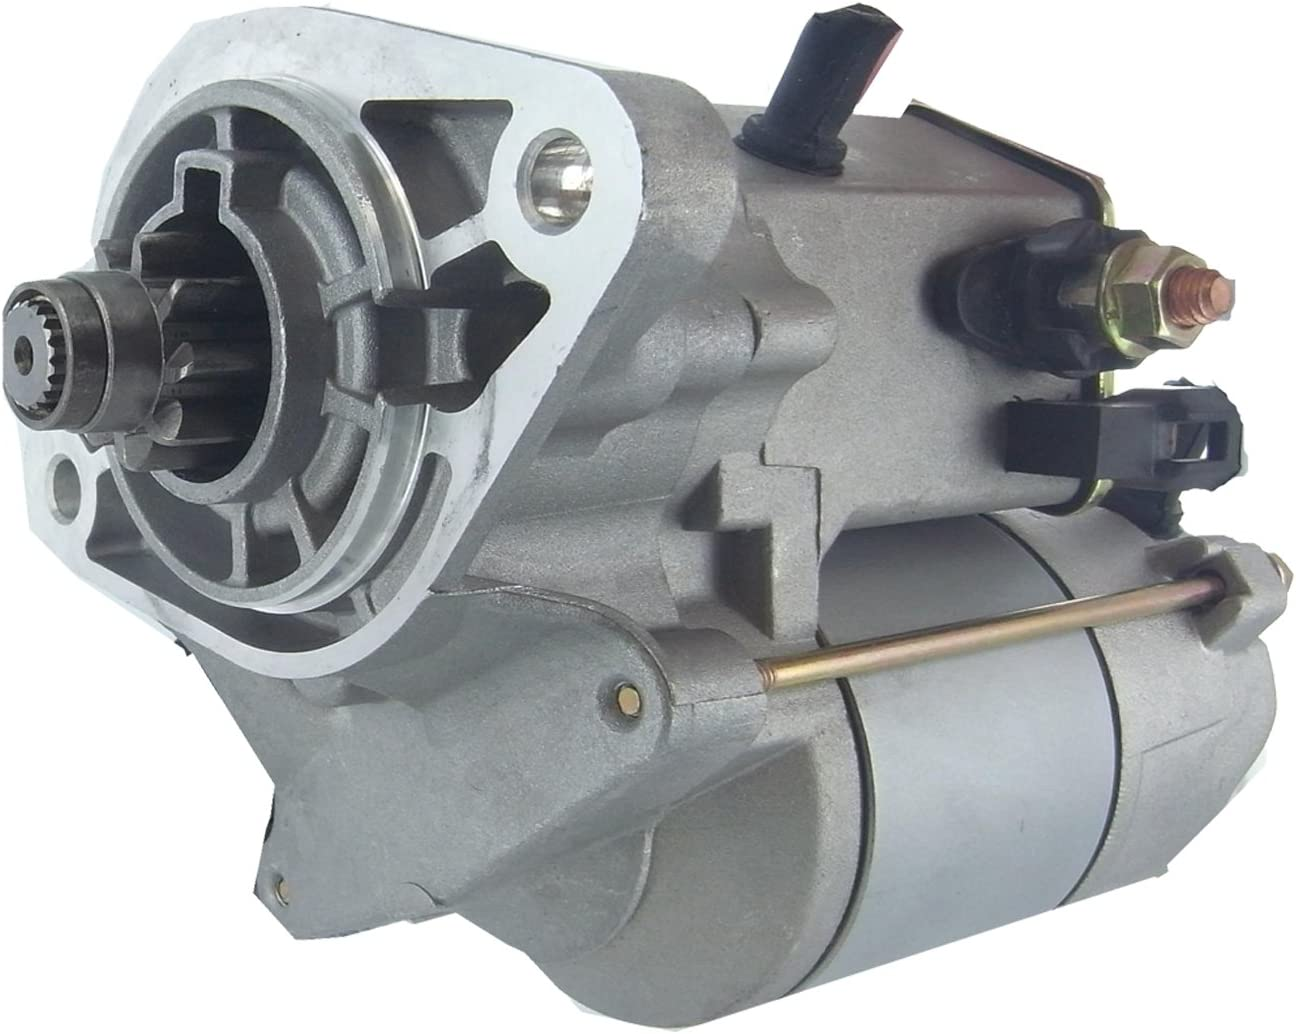 New Starter fits Thermo King Carrier Kubota replaces 228000-1060 228000-1061